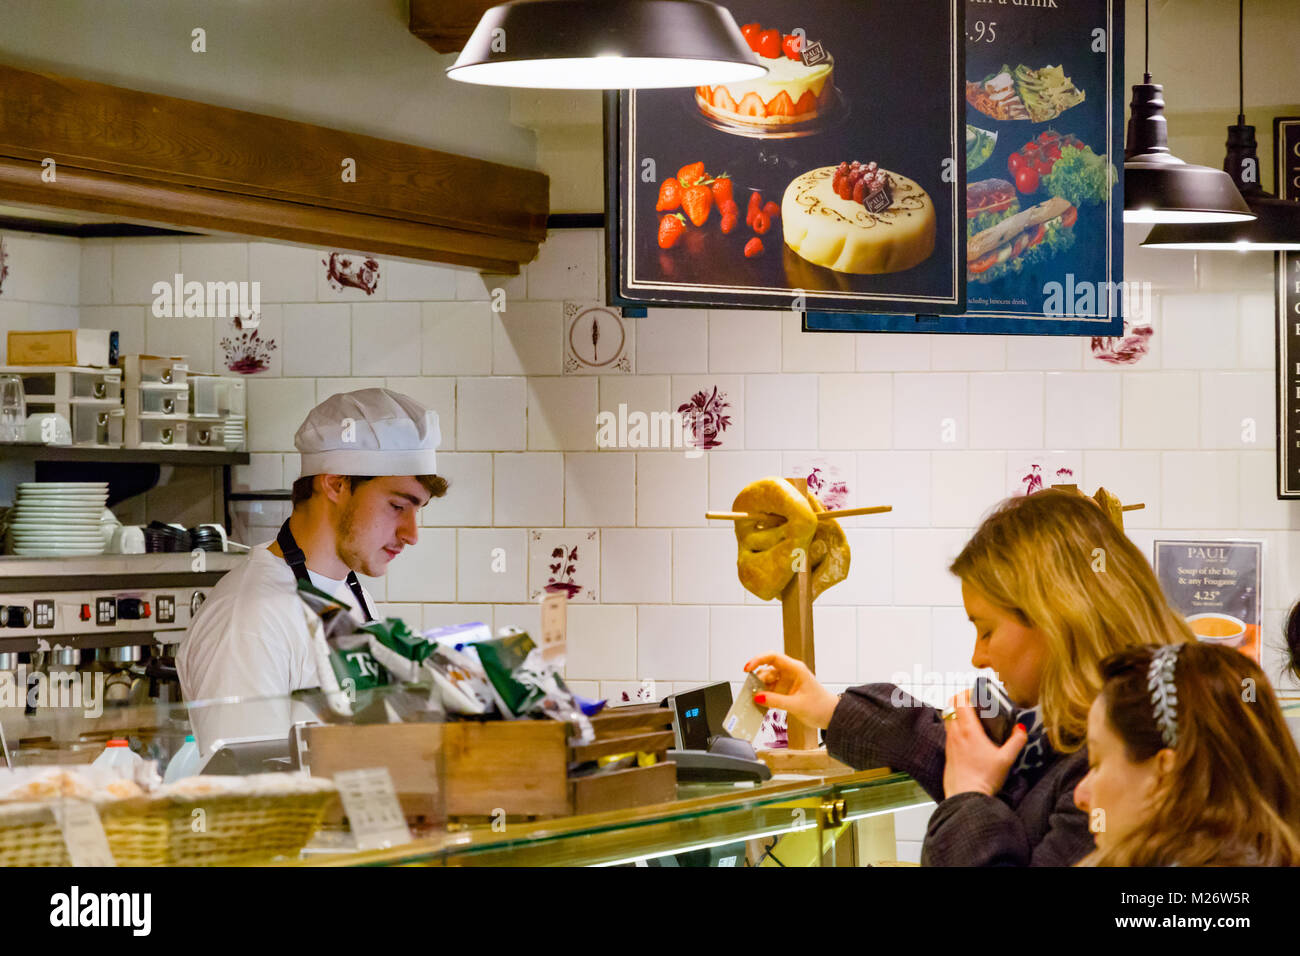 London, UK - February 25, 2018 - Staff servicing customers at Paul bakery shop in Canary Wharf - Stock Image